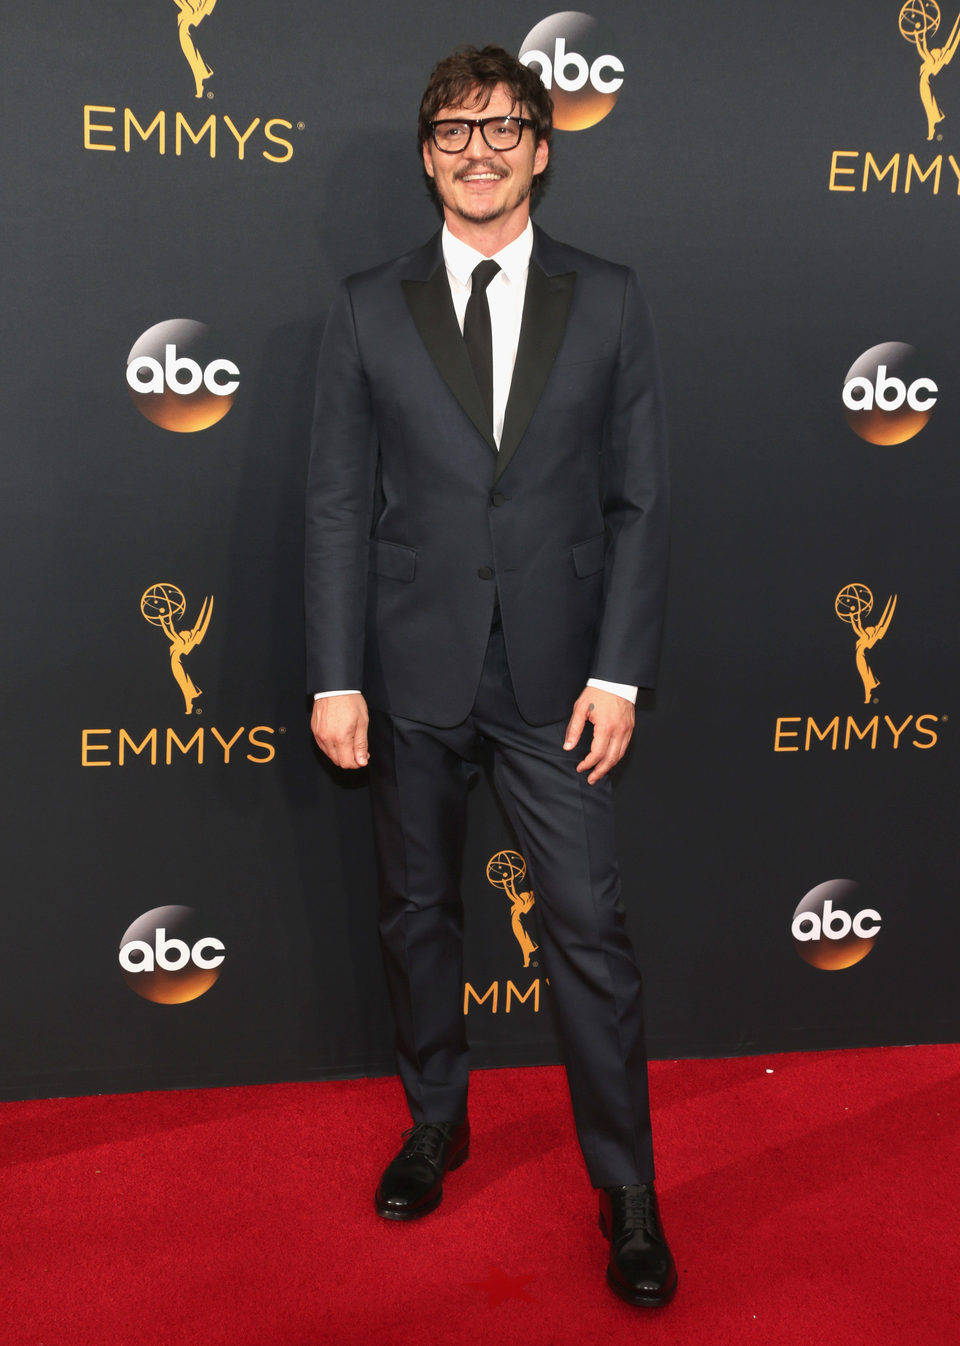 Pedro Pascal at Emmy 2016 red carpet